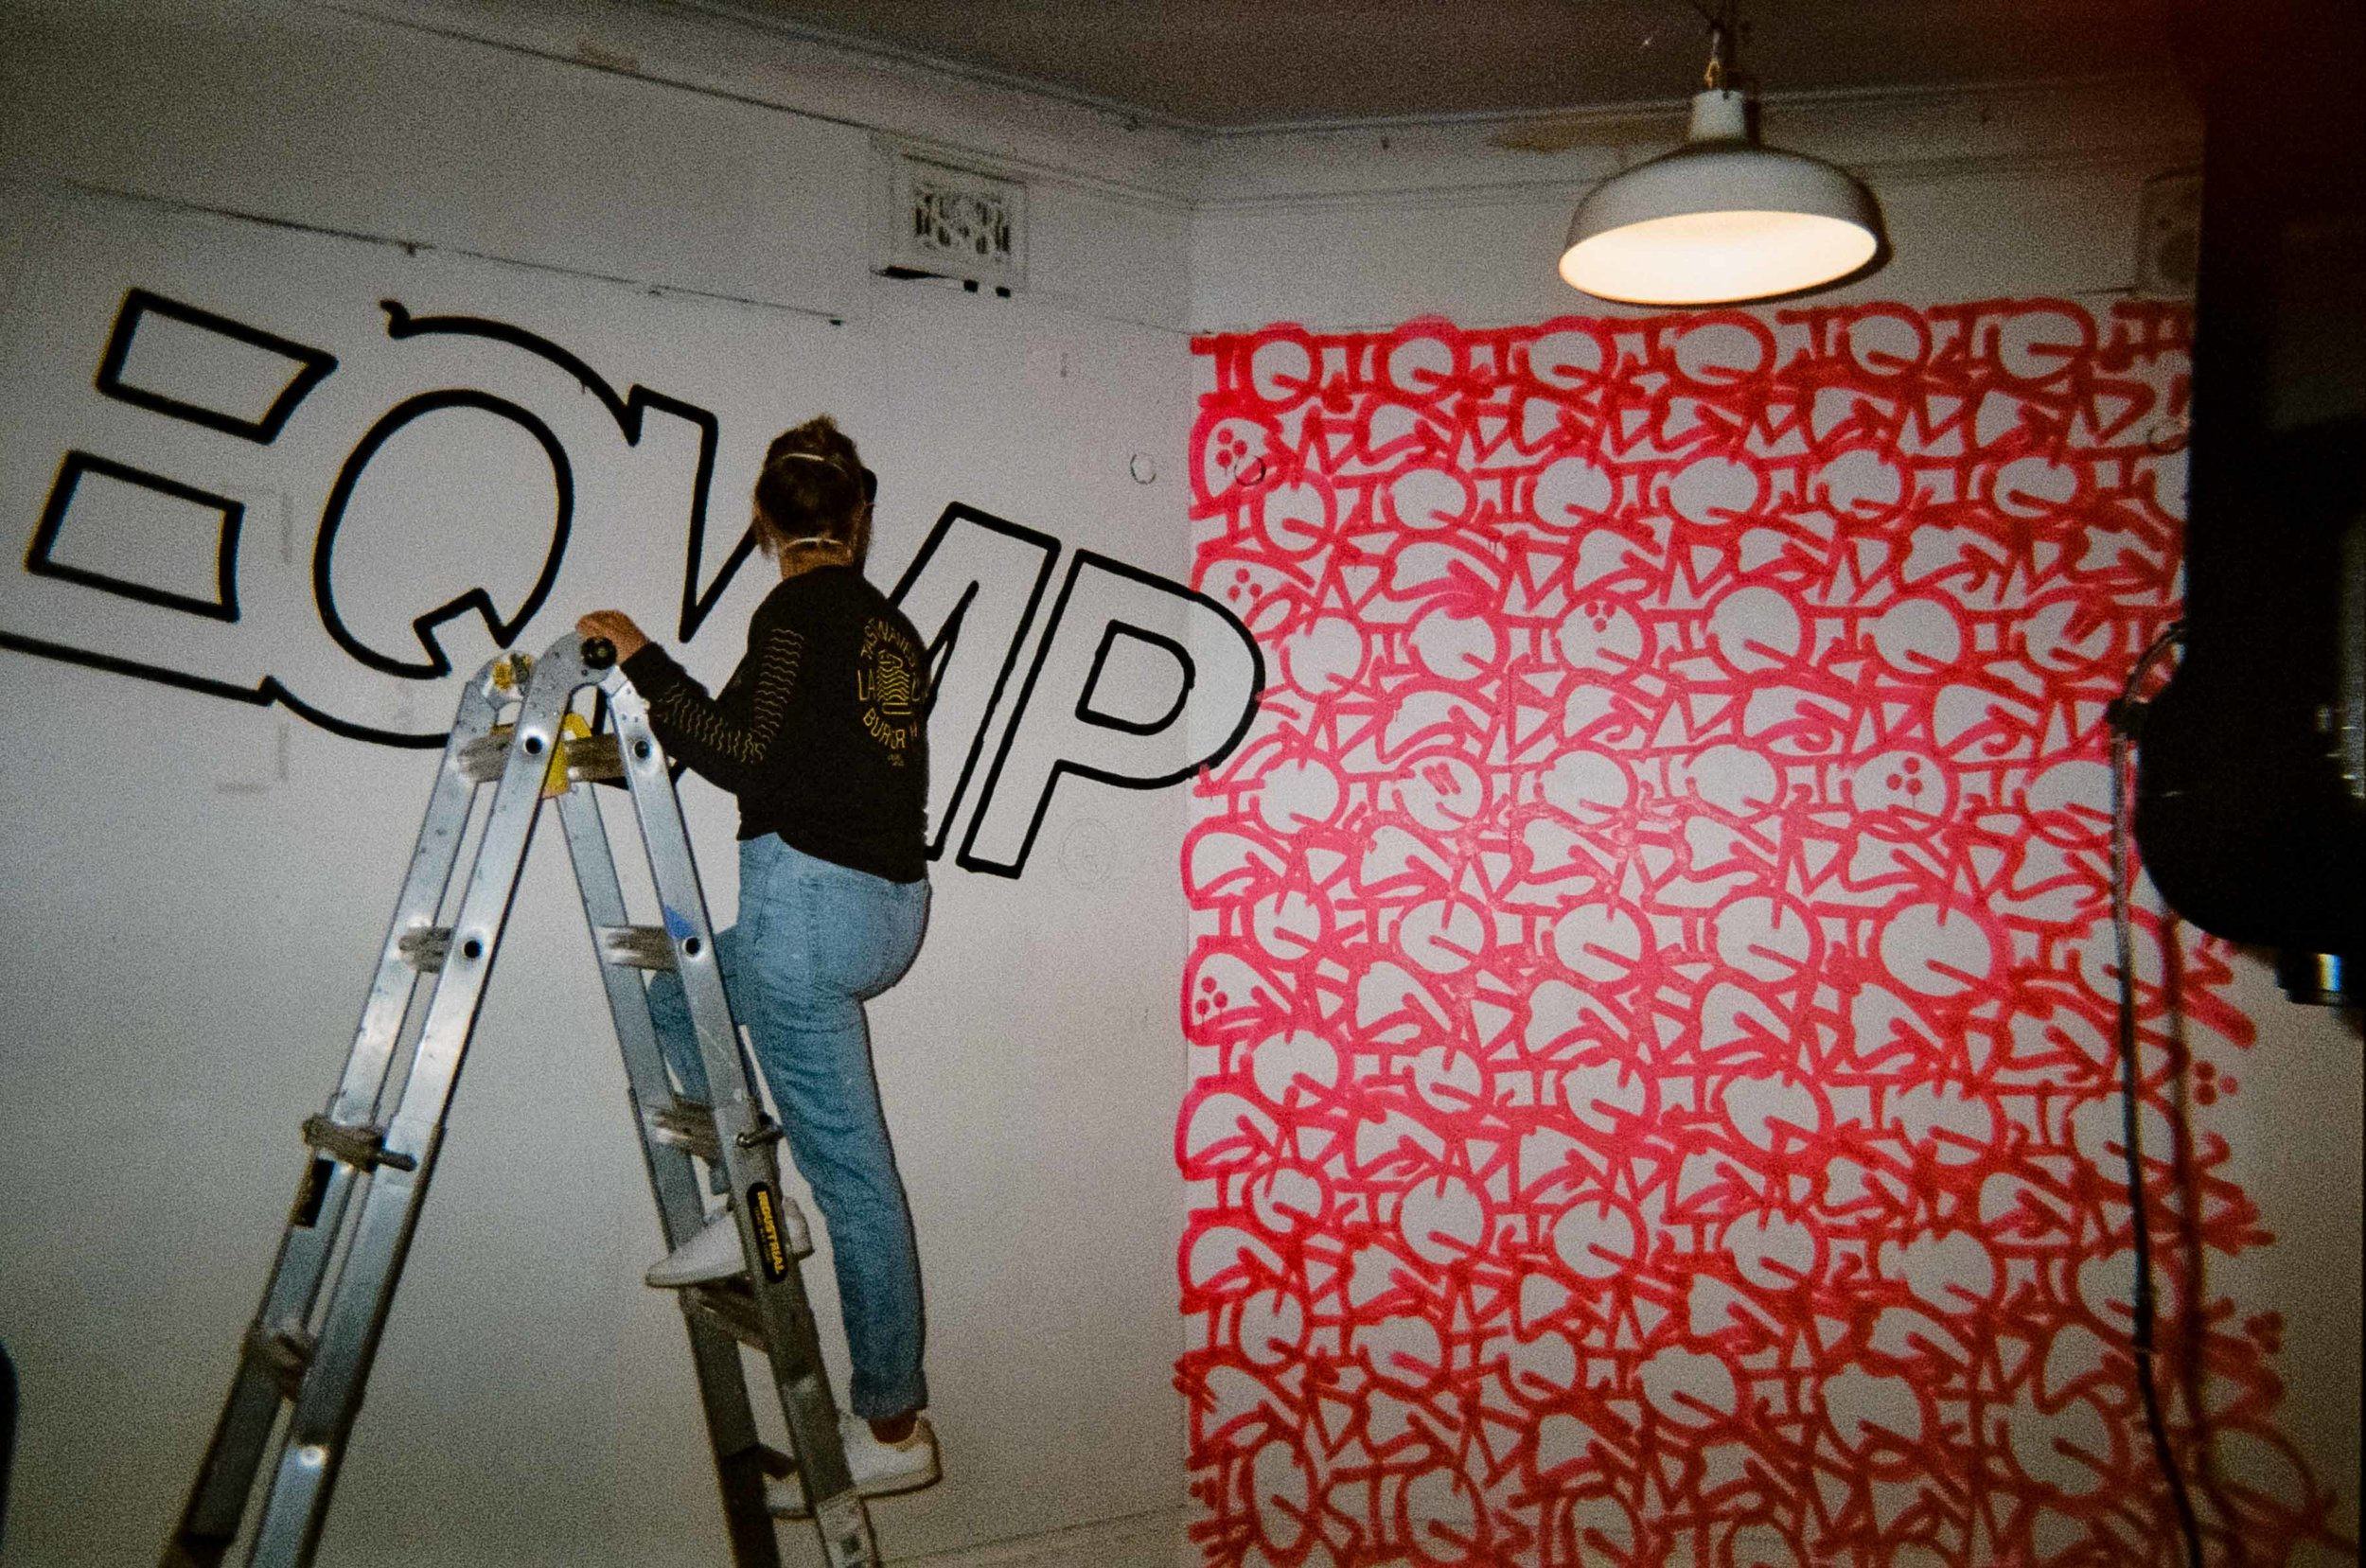 2UP_3_film_spendlove_web_illeqwip-45.jpg